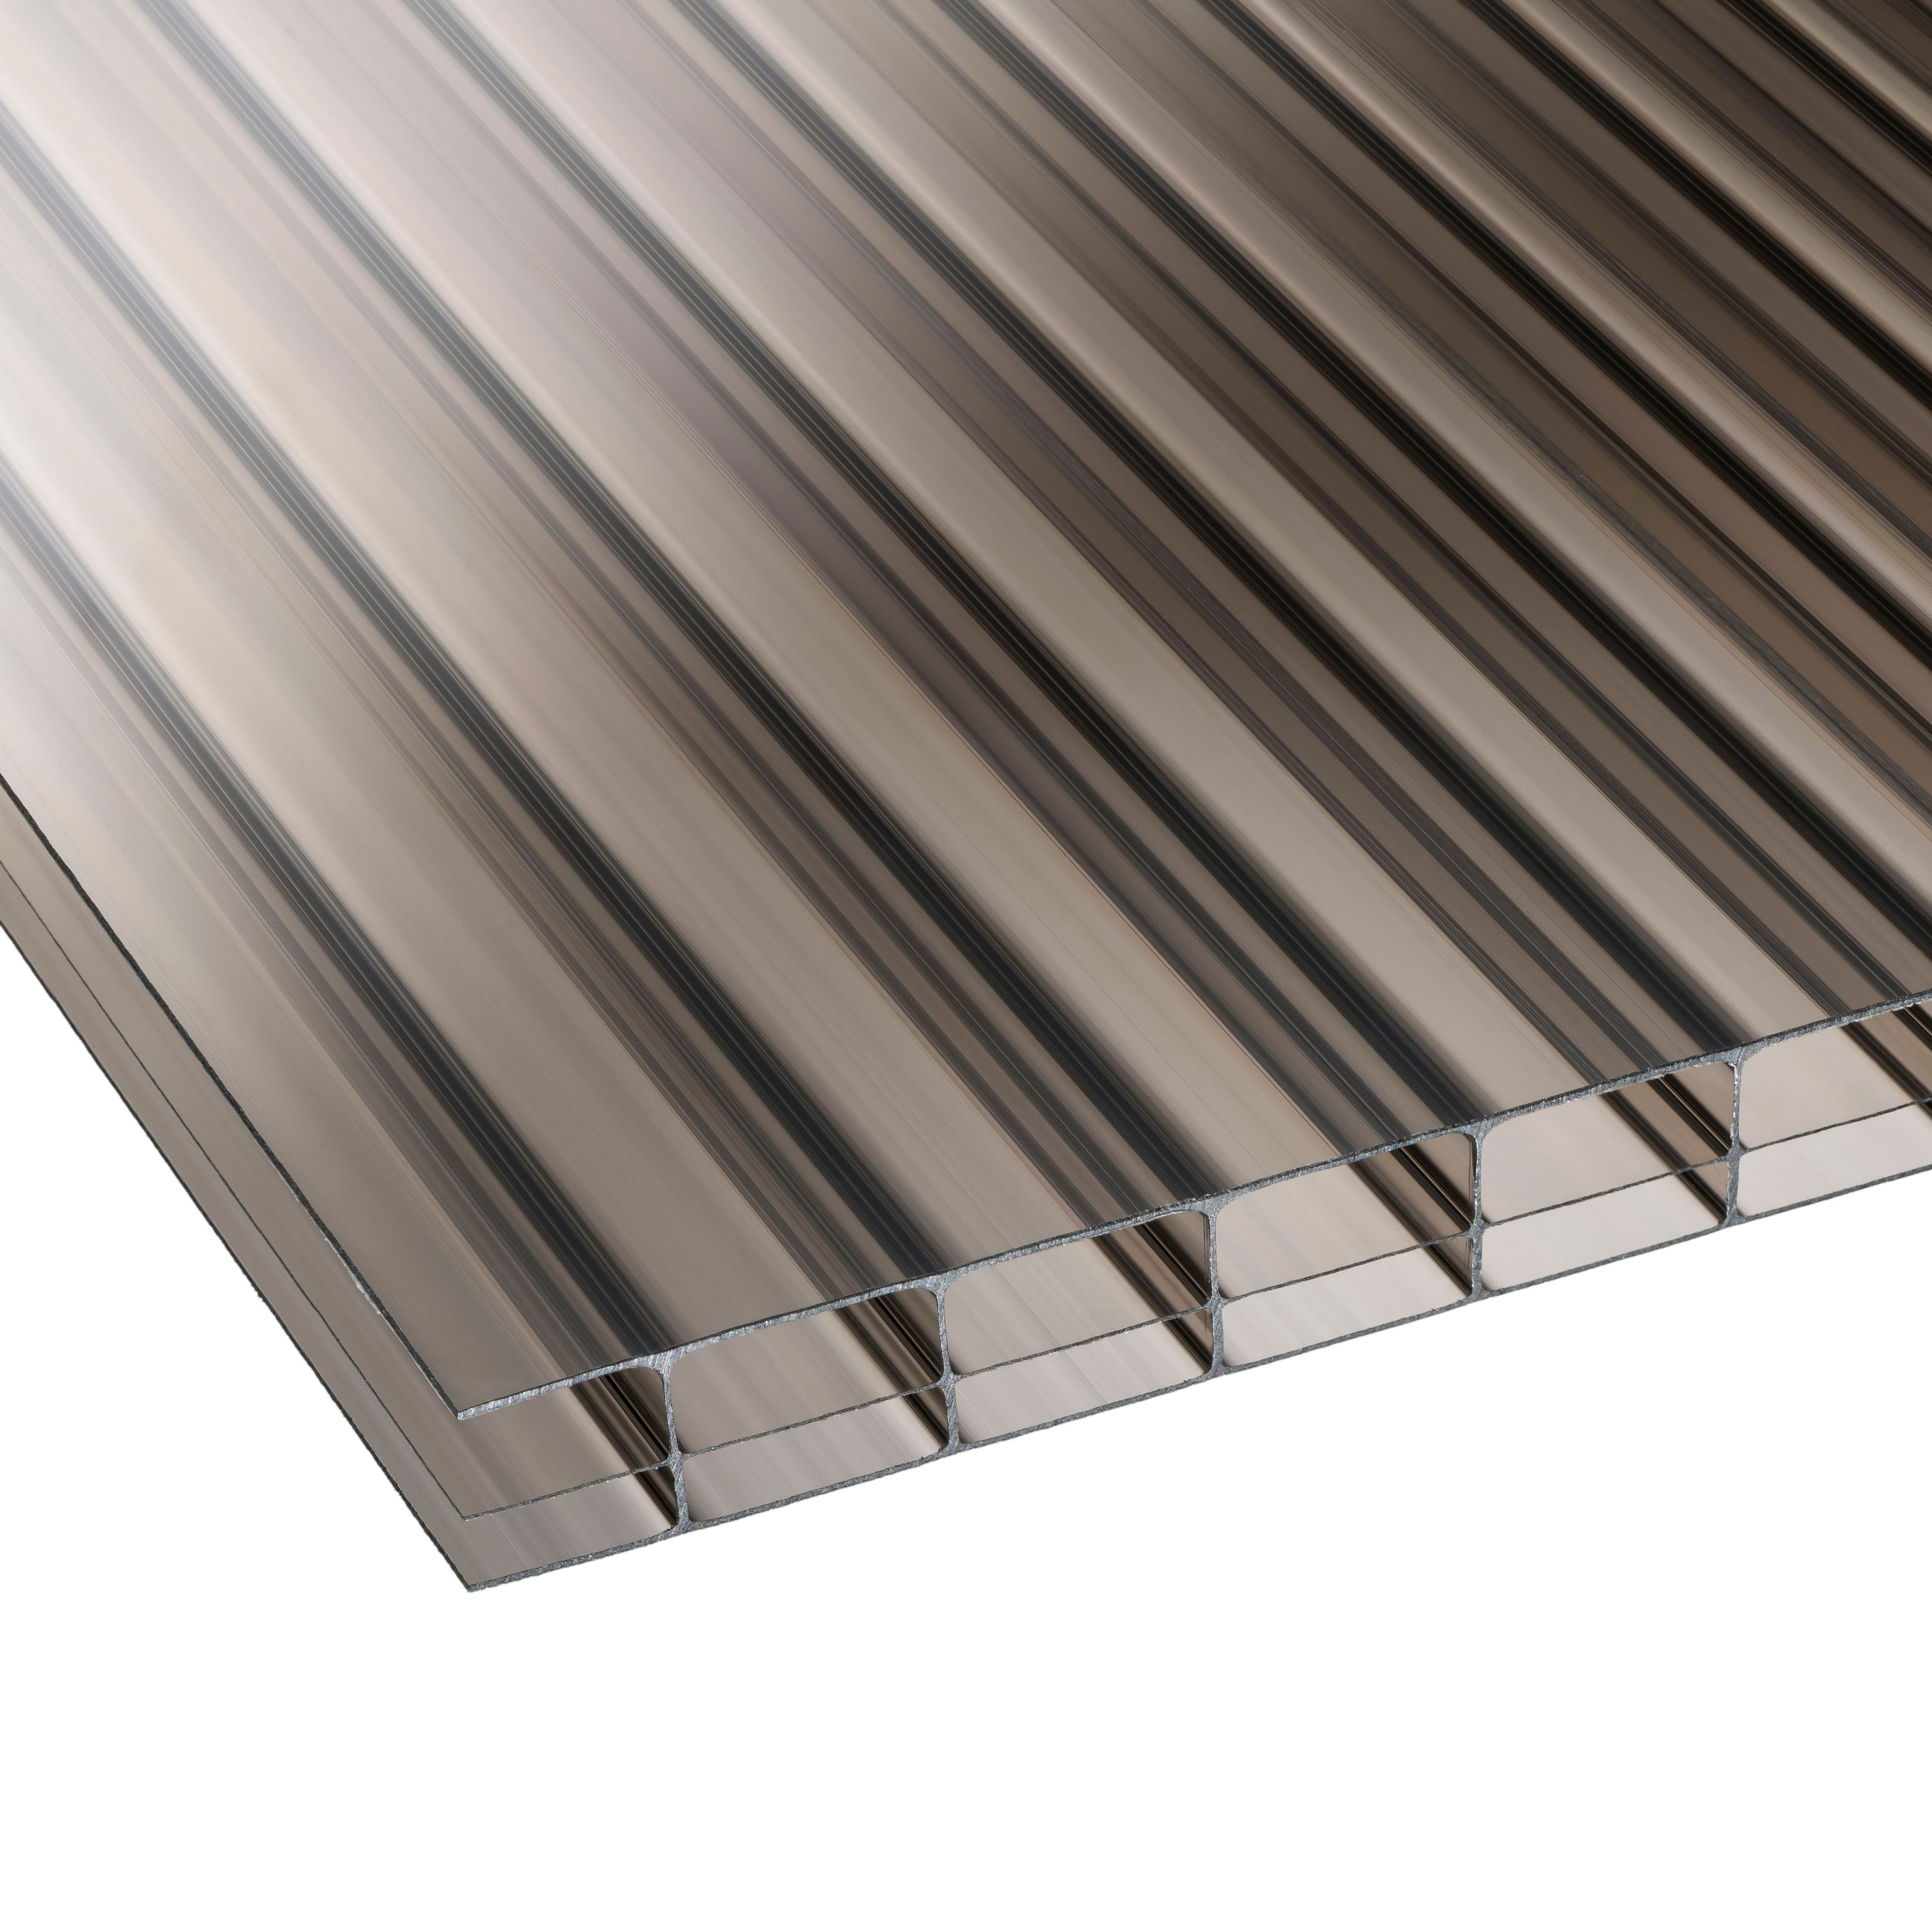 Bronze Multiwall Polycarbonate Roofing Sheet 3m X 700mm, Pack Of 5